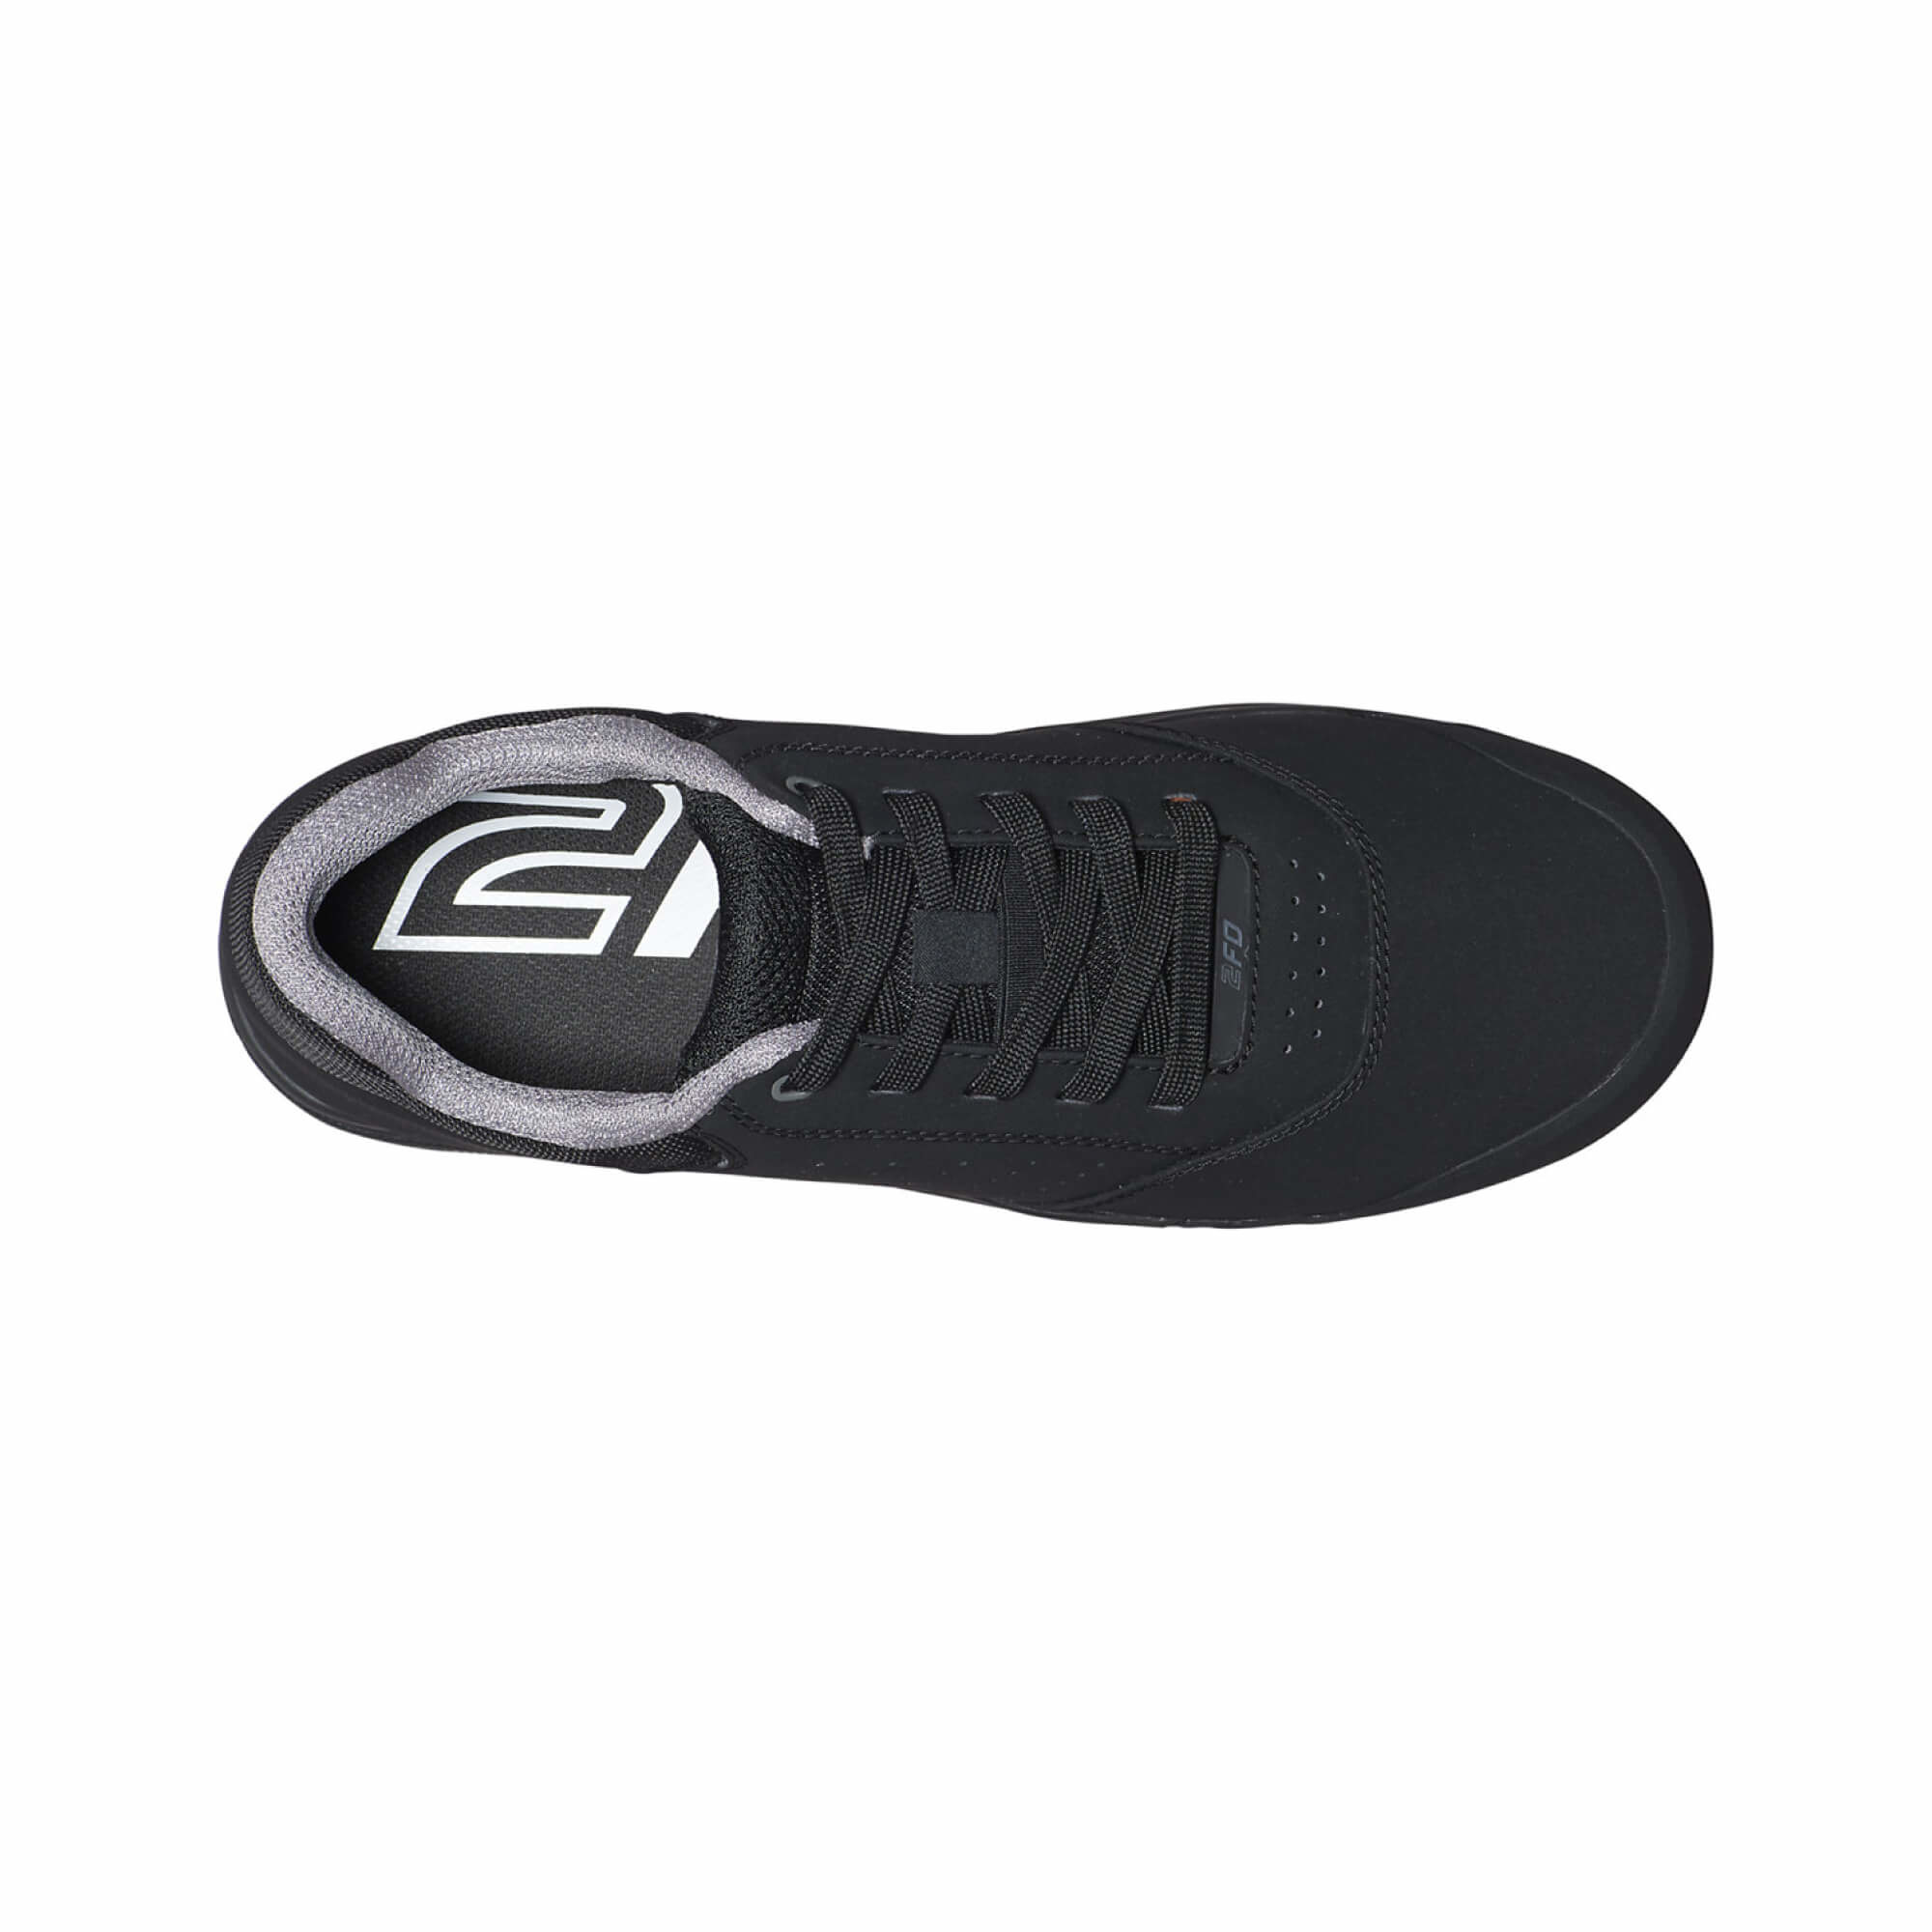 2FO Roost Clip MTB Shoe-4